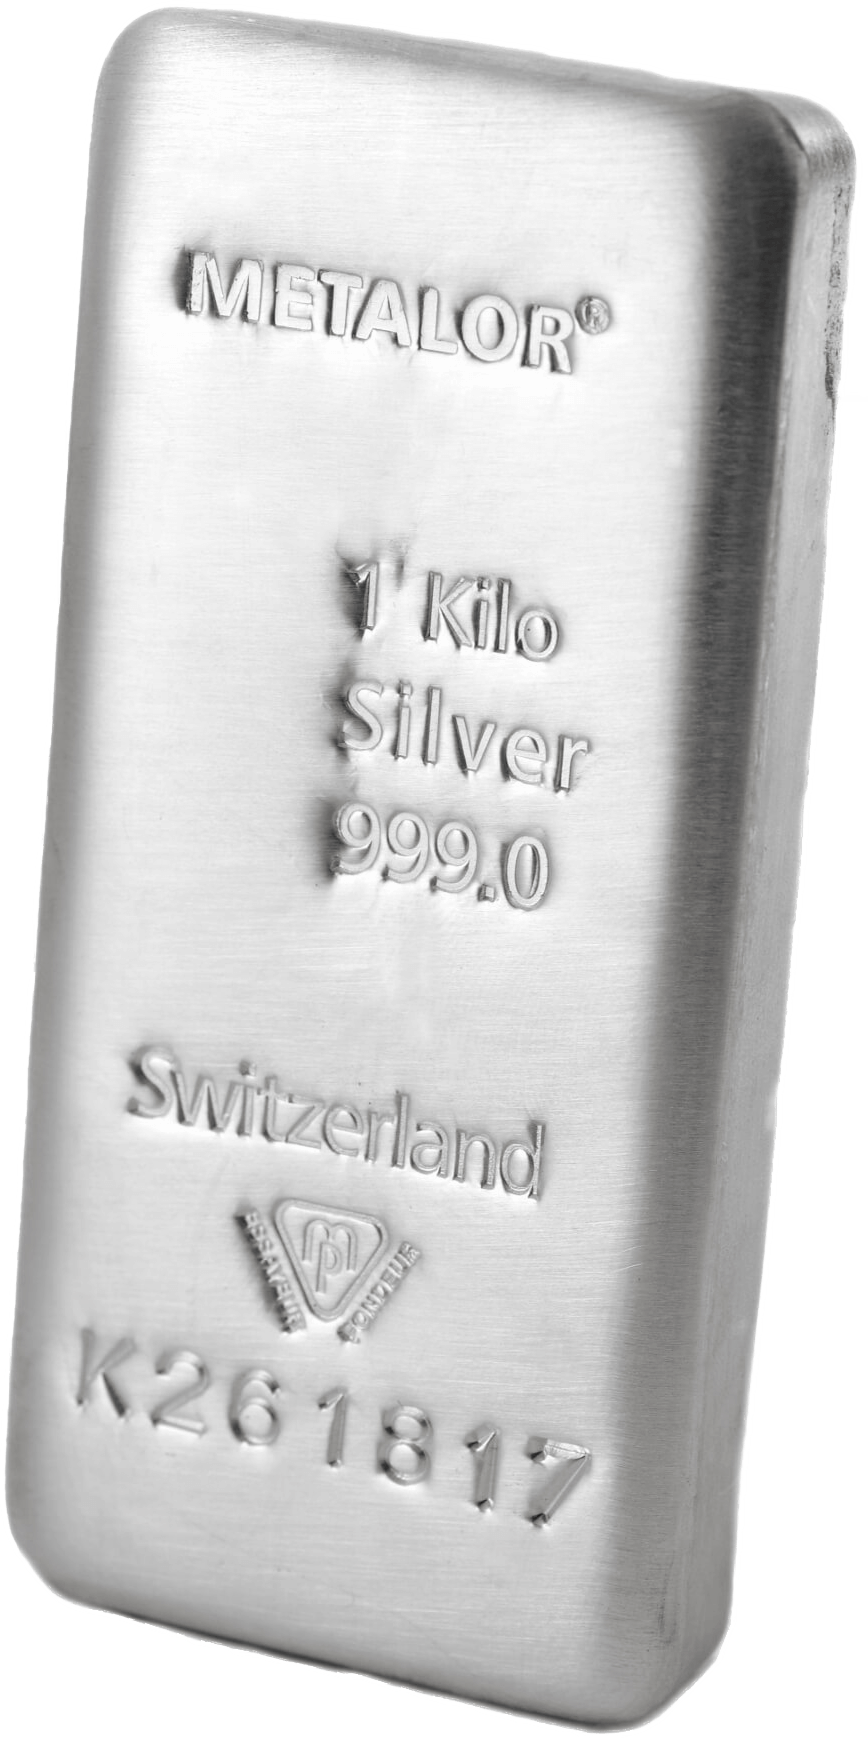 1kg 999 Metalor Silver Bullion Precious Metals Bar